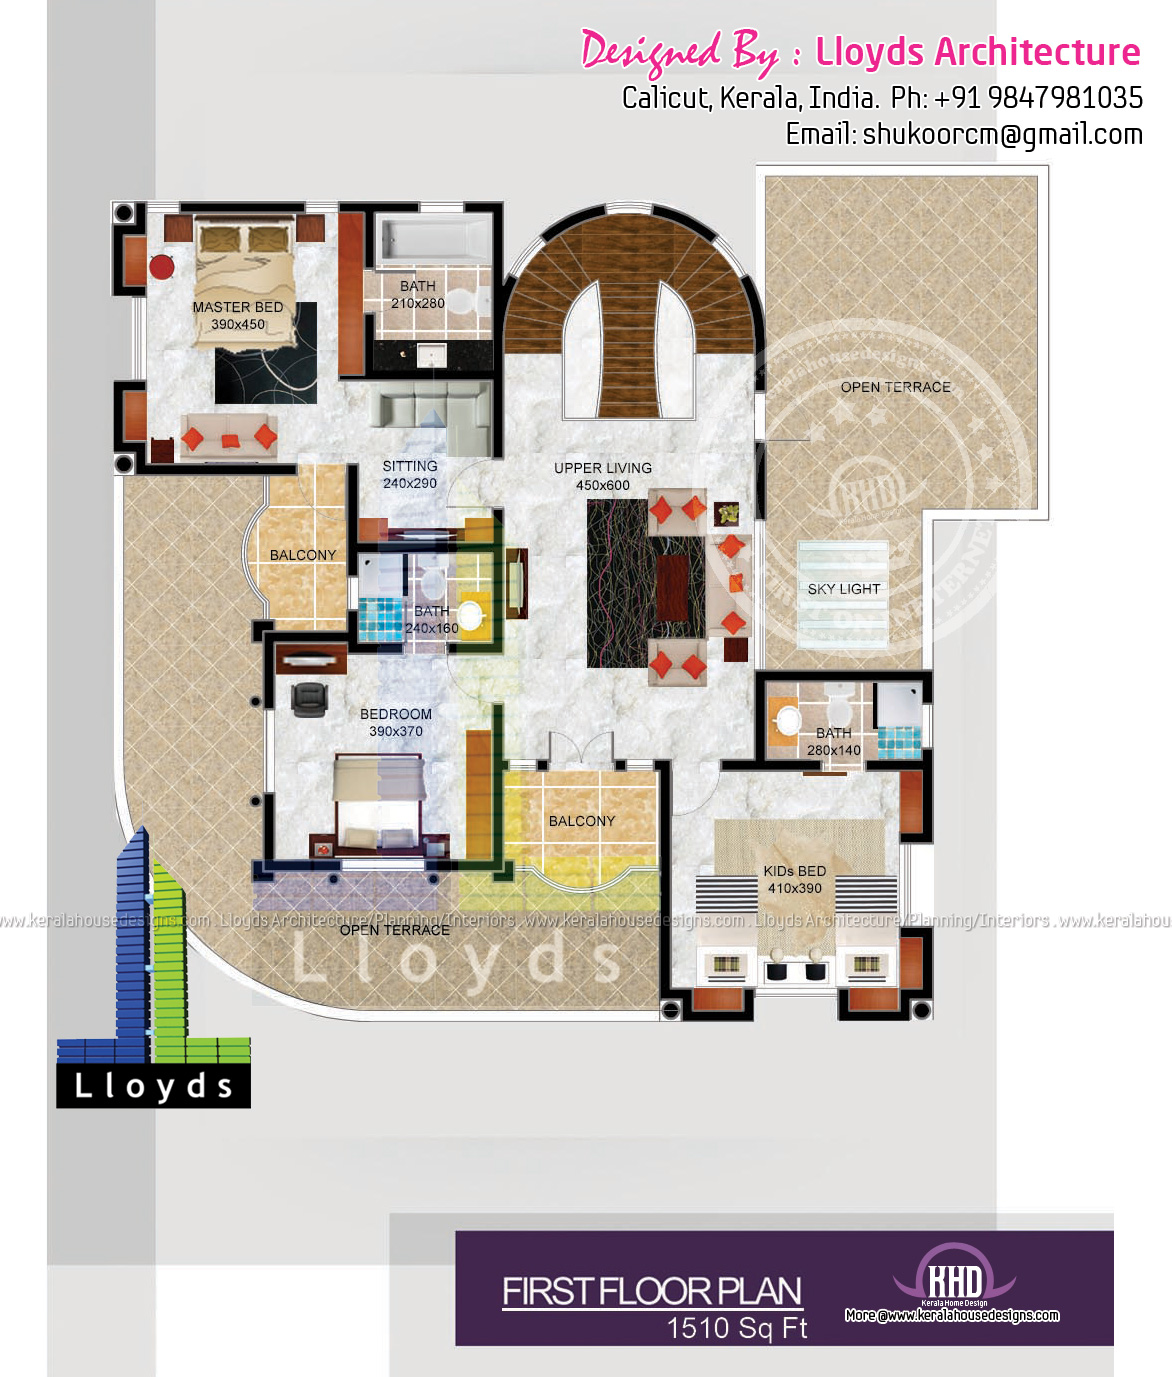 5 Bedroom Luxurious Bungalow Floor Plan And 3D View